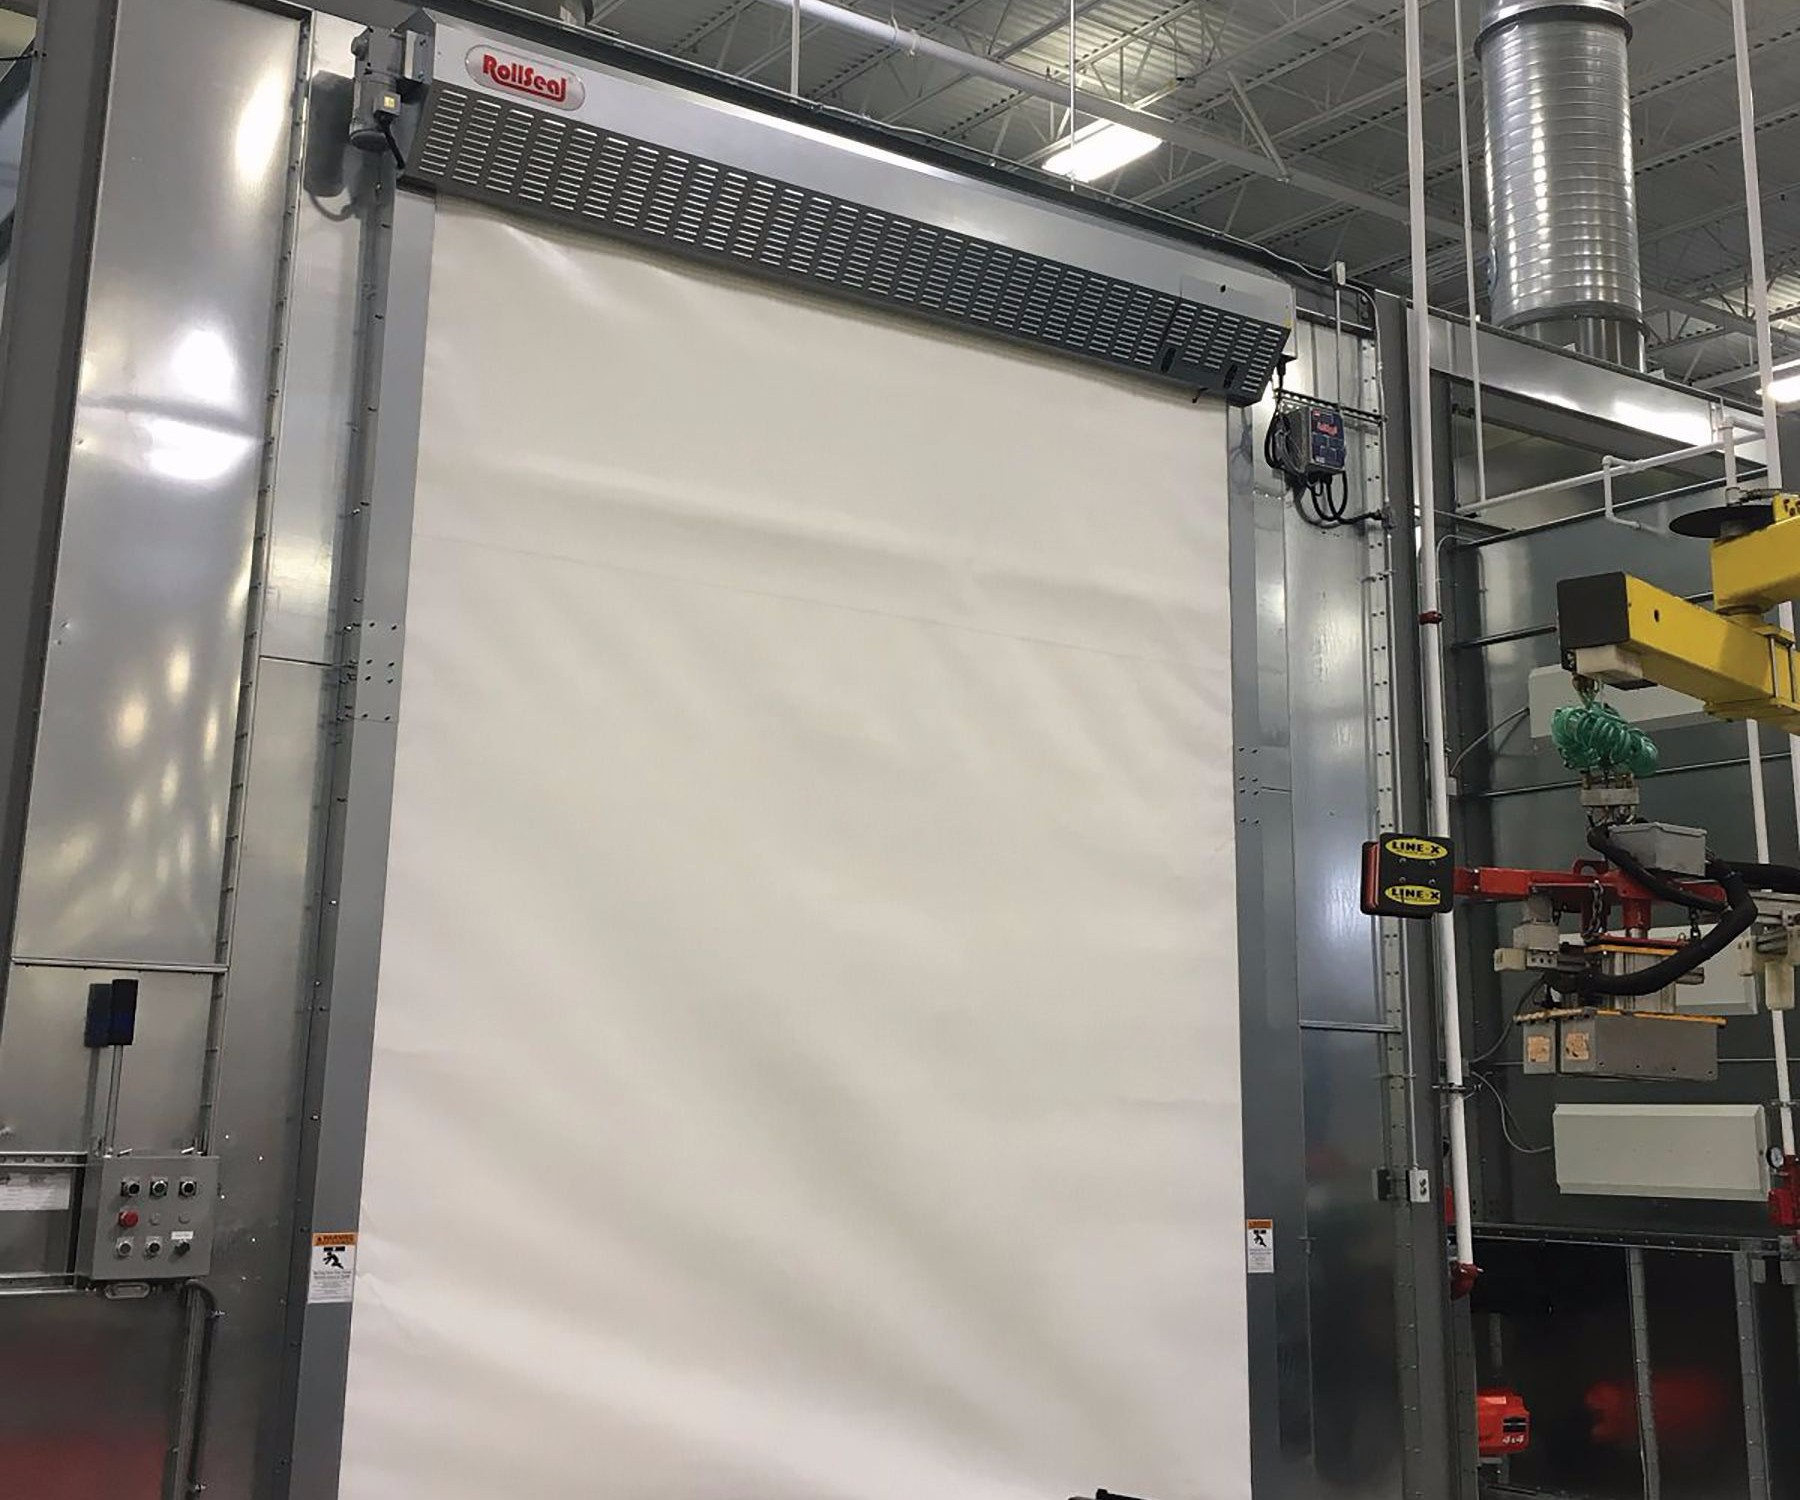 RollSeal fabric oven door & Fabric Oven Door Withstands Temps as High as 500°F : Products Finishing